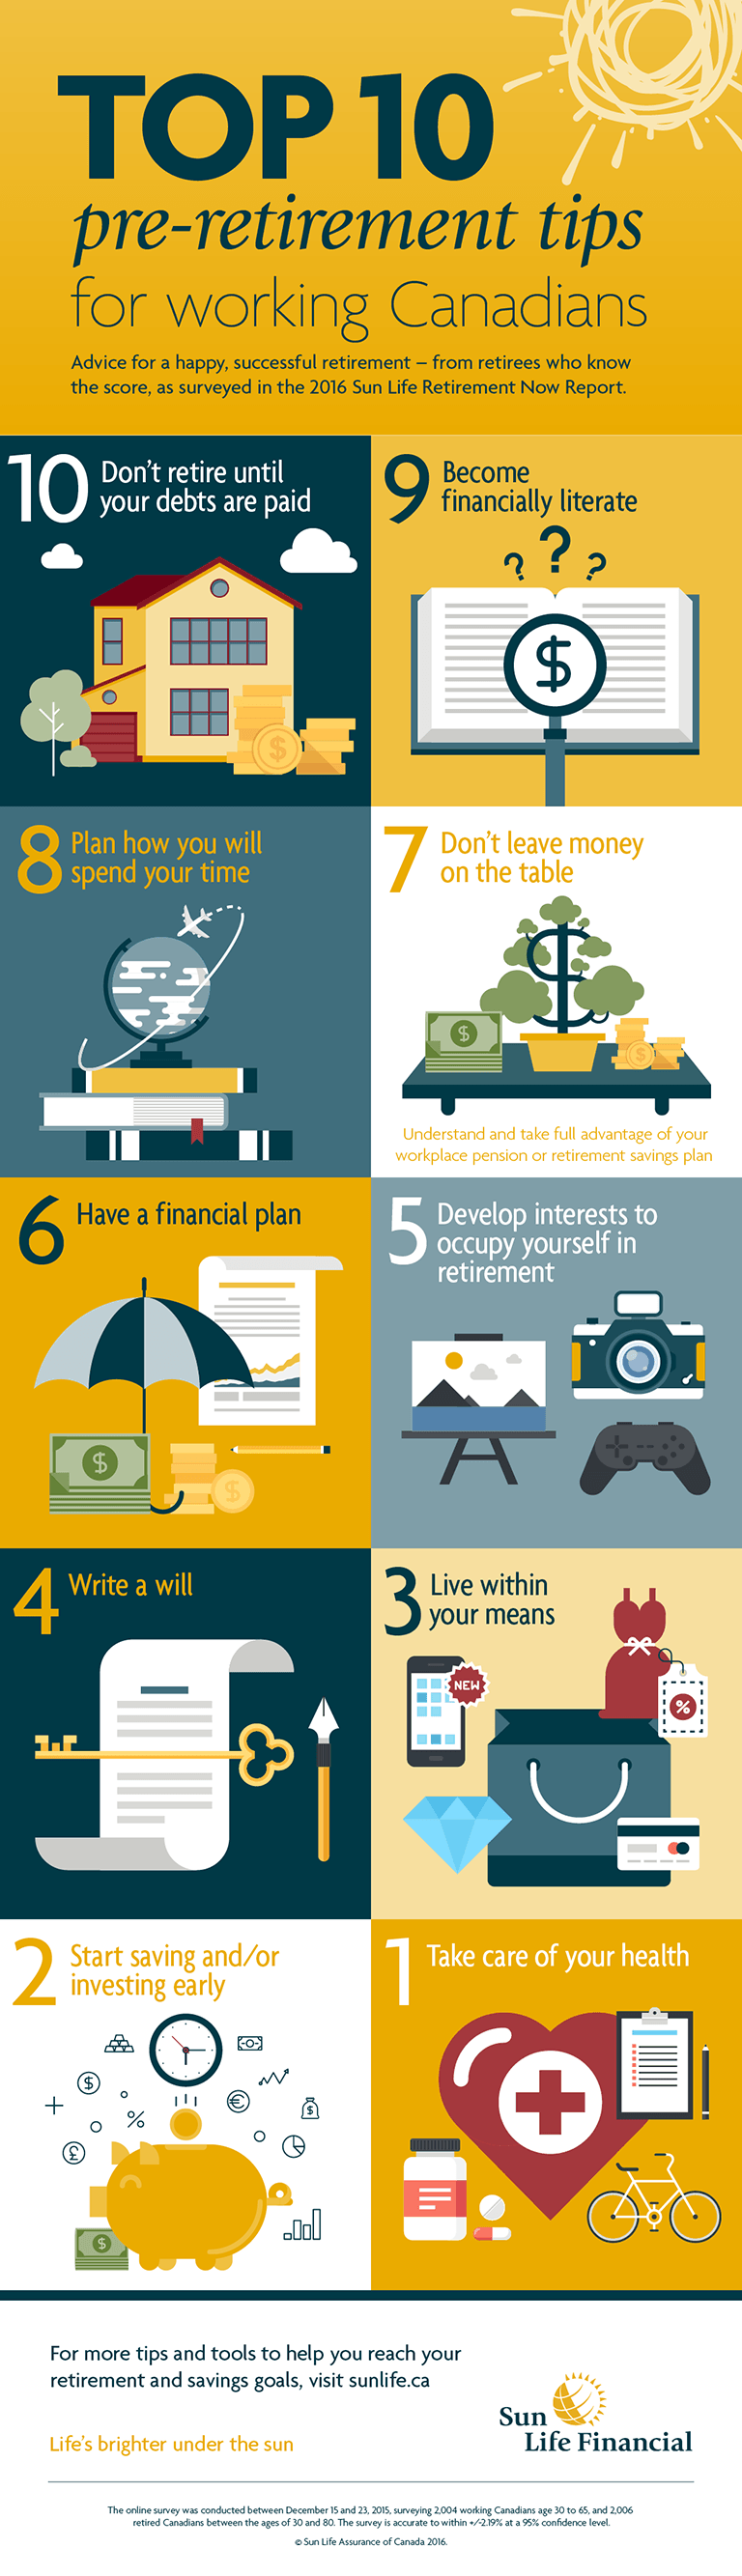 Retirement infographic by Sun Life Financial